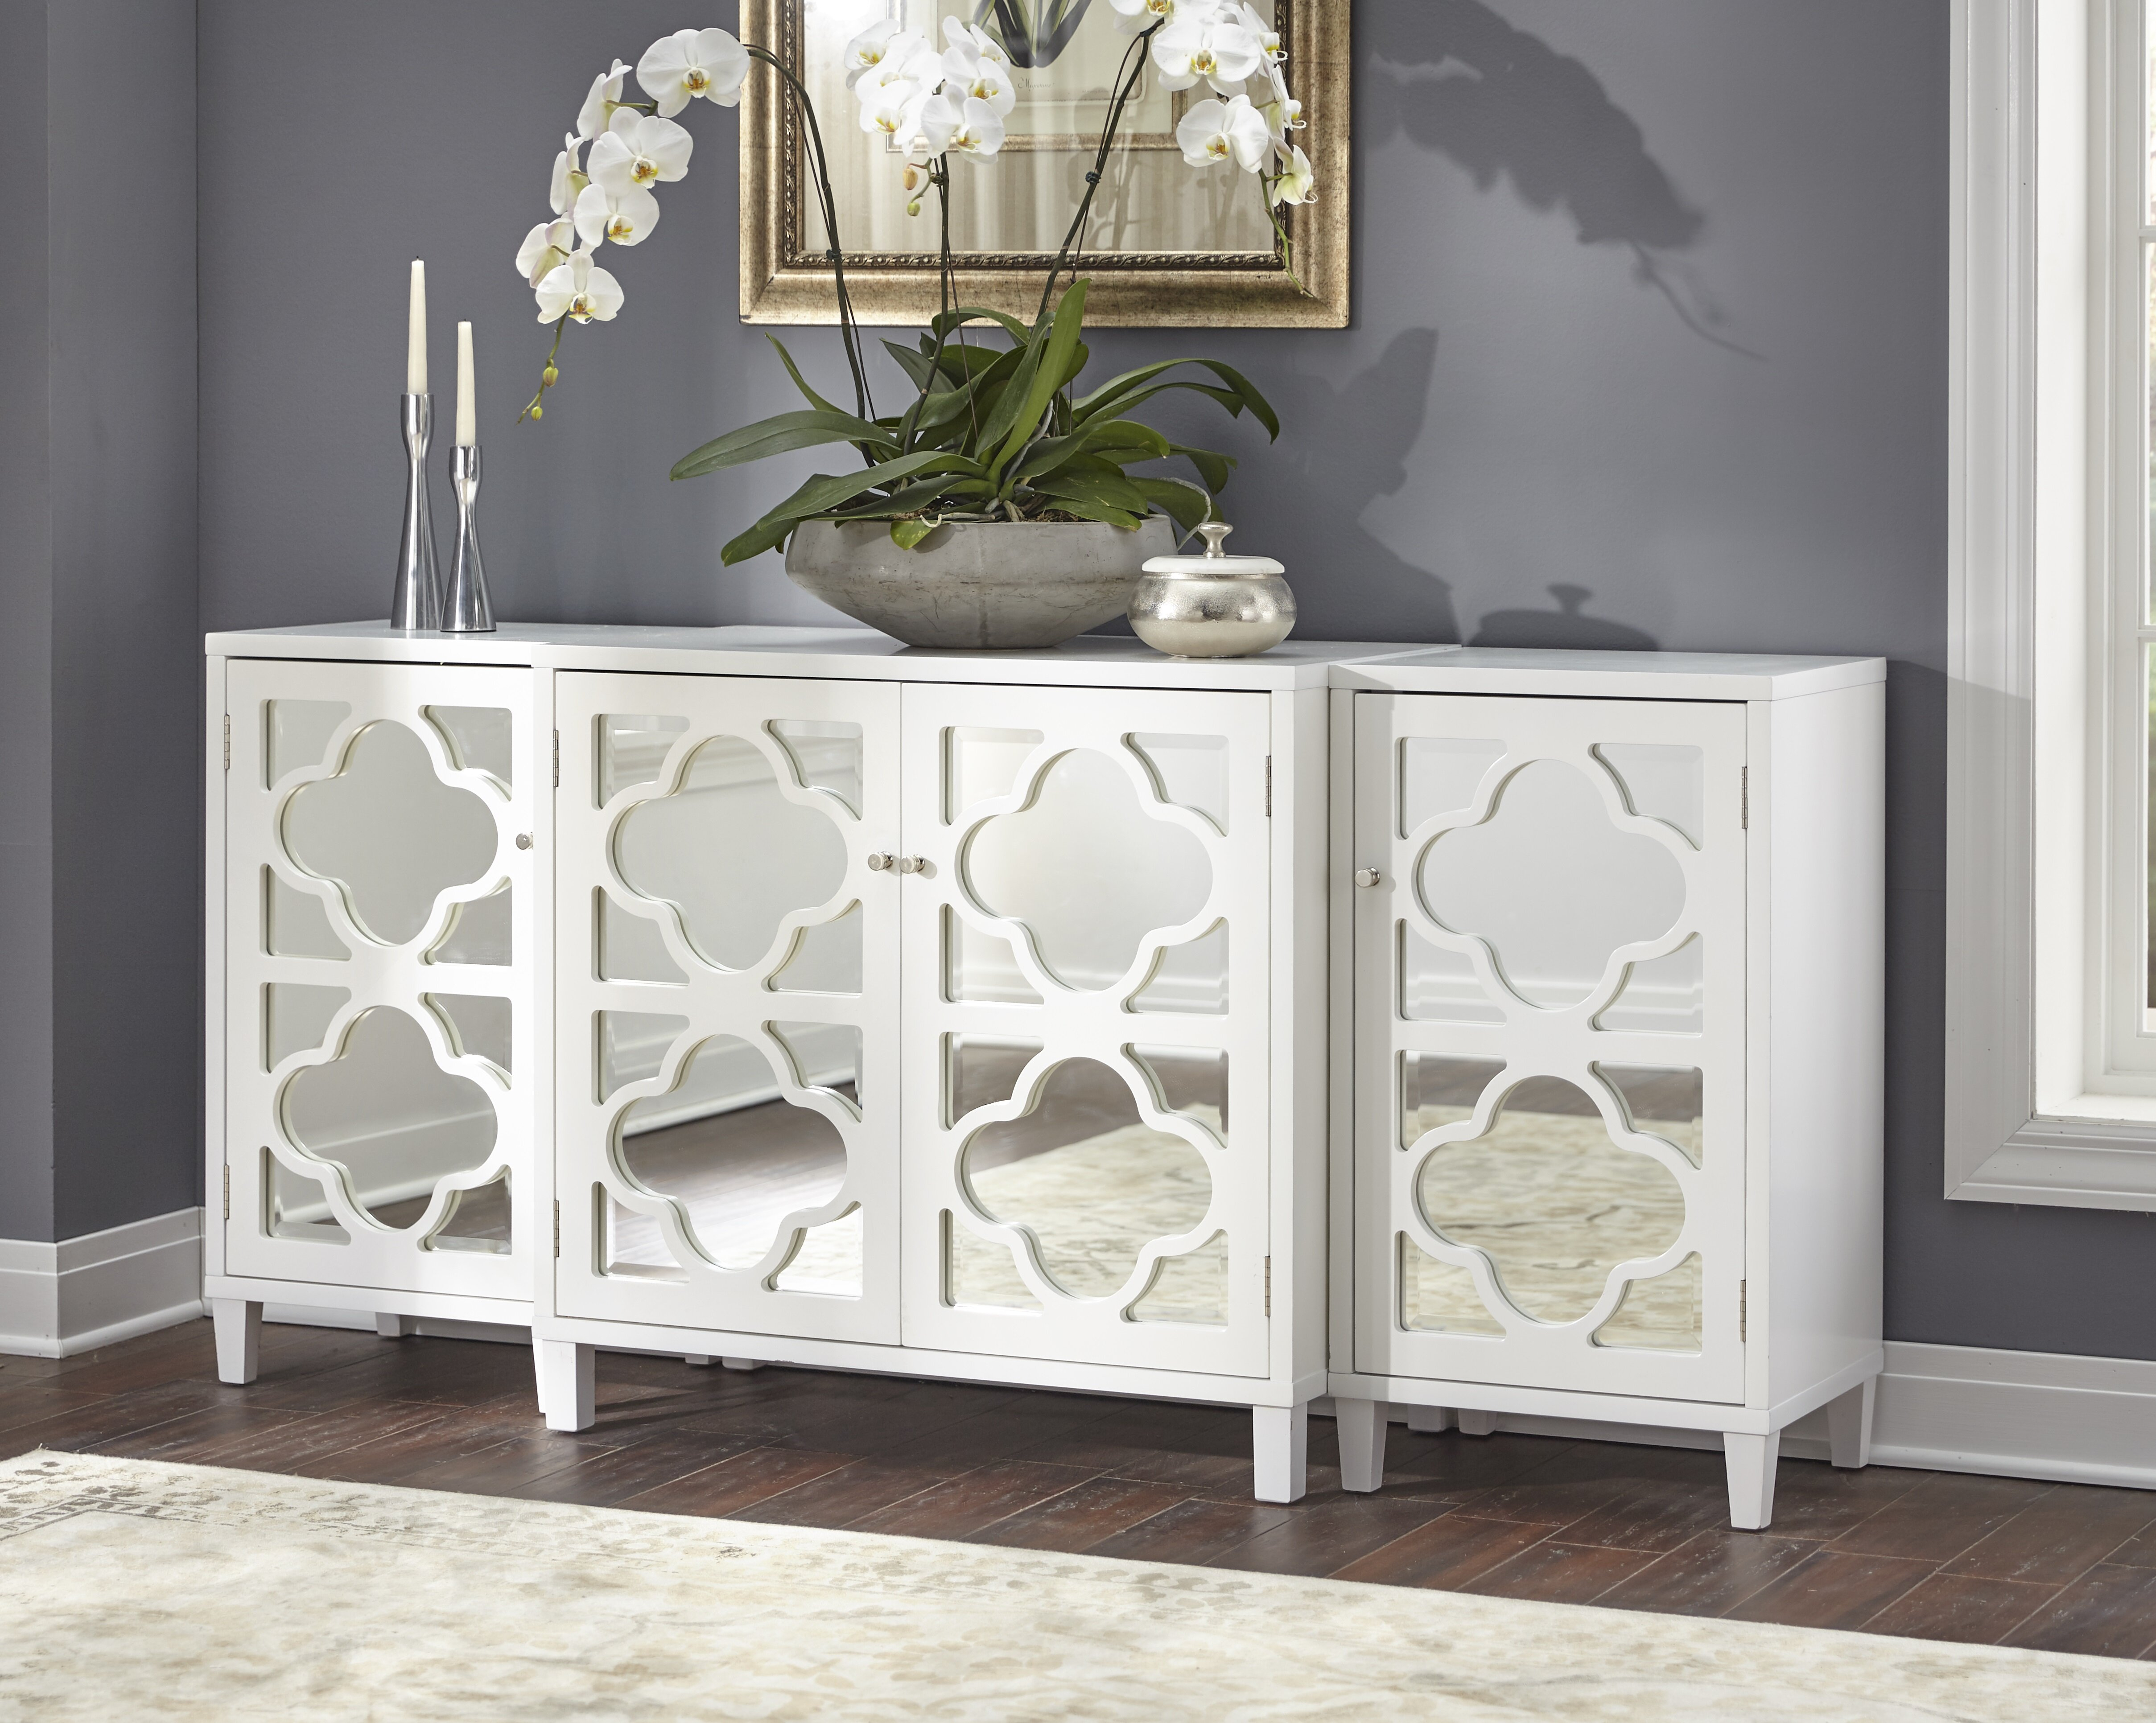 Charlton Home Gordy Mirrored 3 Piece Sideboard Set | Wayfair Inside Most Current Joyner Sideboards (View 7 of 20)